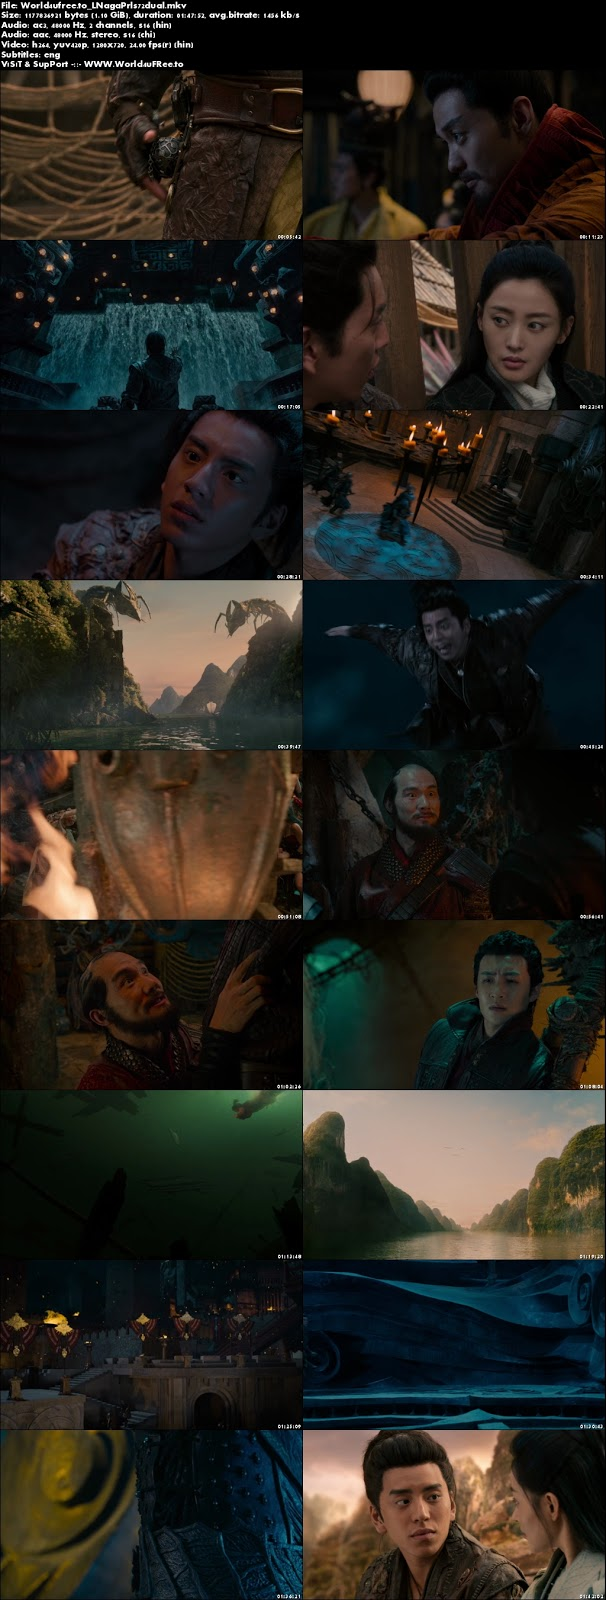 Legend of the Naga Pearls 2017 Dual Audio 720p BRRip 1Gb x264 world4ufree.to, hollywood movie Legend of the Naga Pearls 2017 hindi dubbed dual audio hindi english languages original audio 720p BRRip hdrip free download 700mb or watch online at world4ufree.to